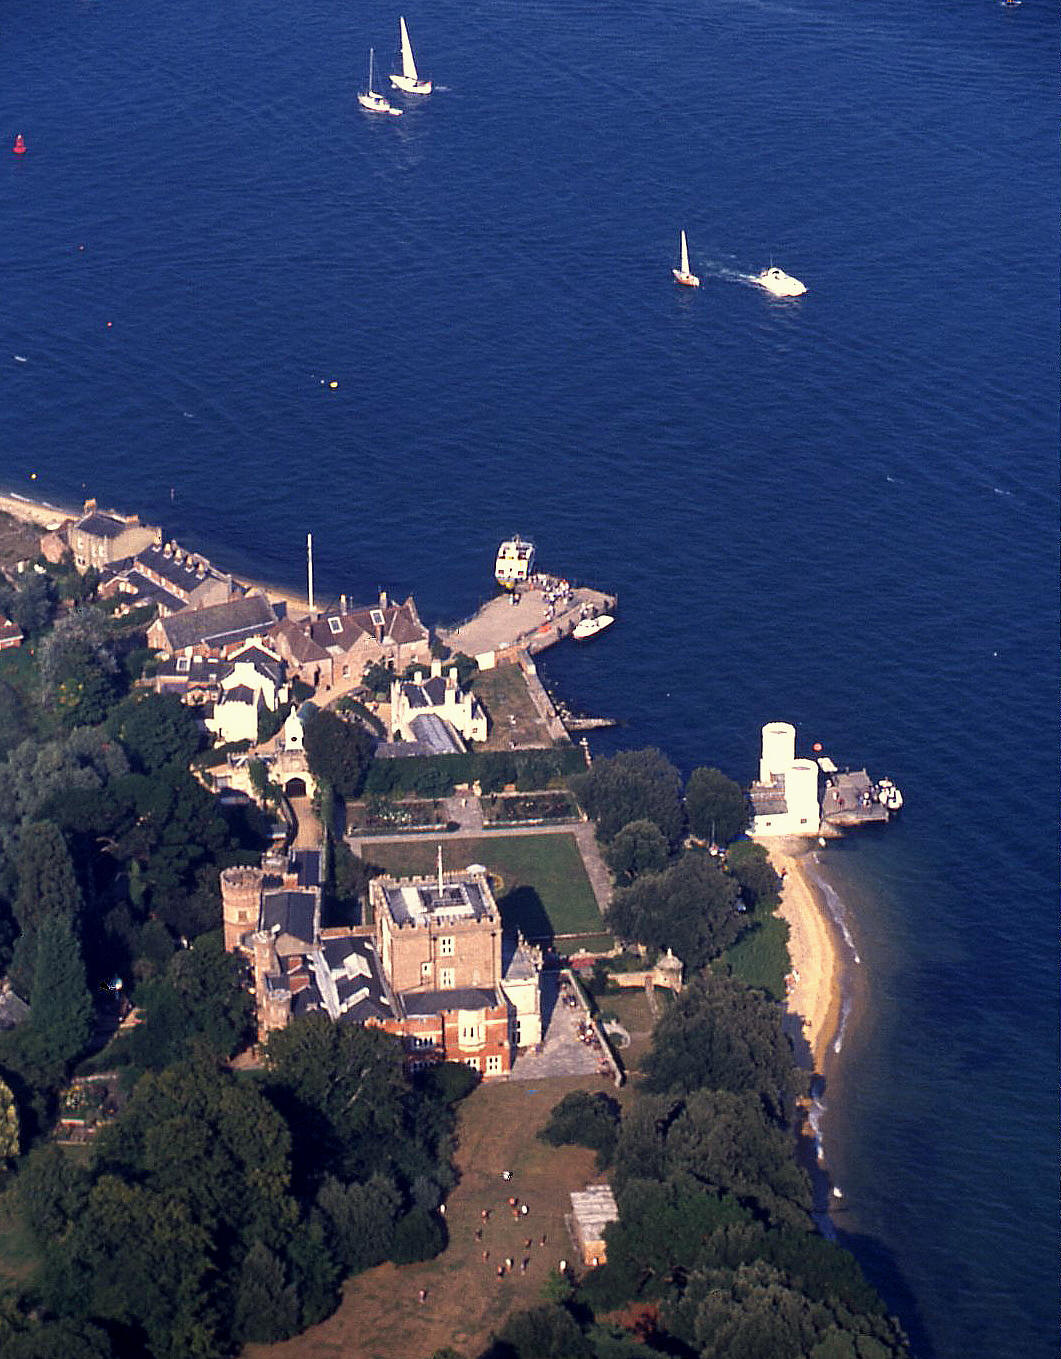 Brownsea Island detail, Poole Harbour, Dorset in 2001